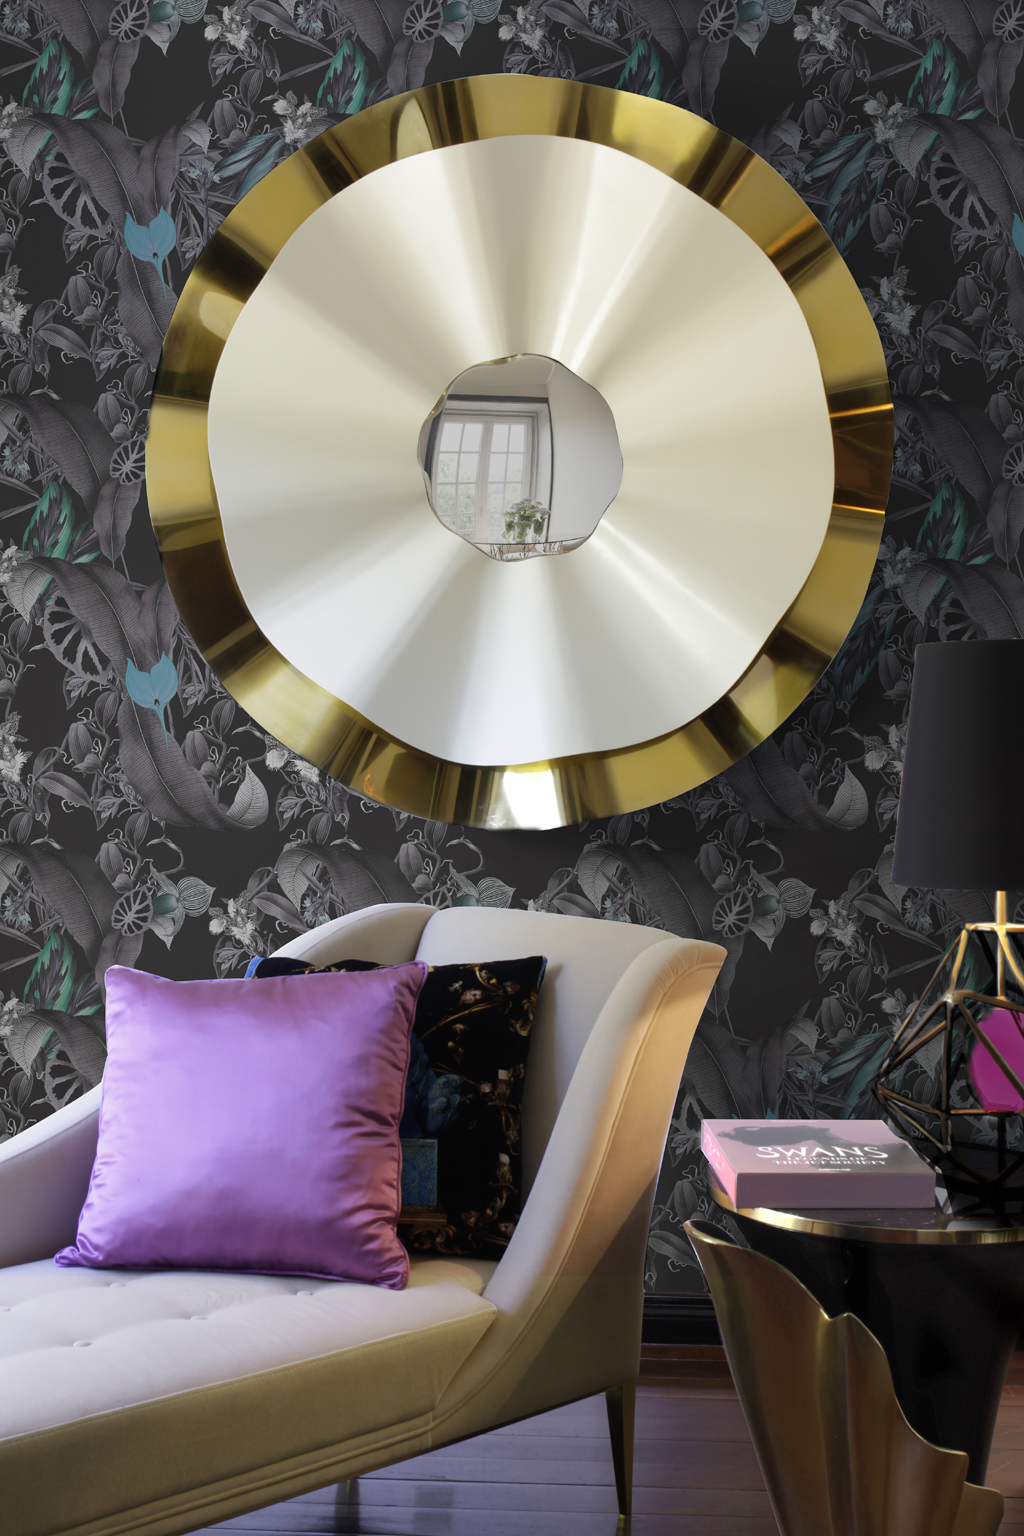 striking gold reve mirror by koket in a bold interior design